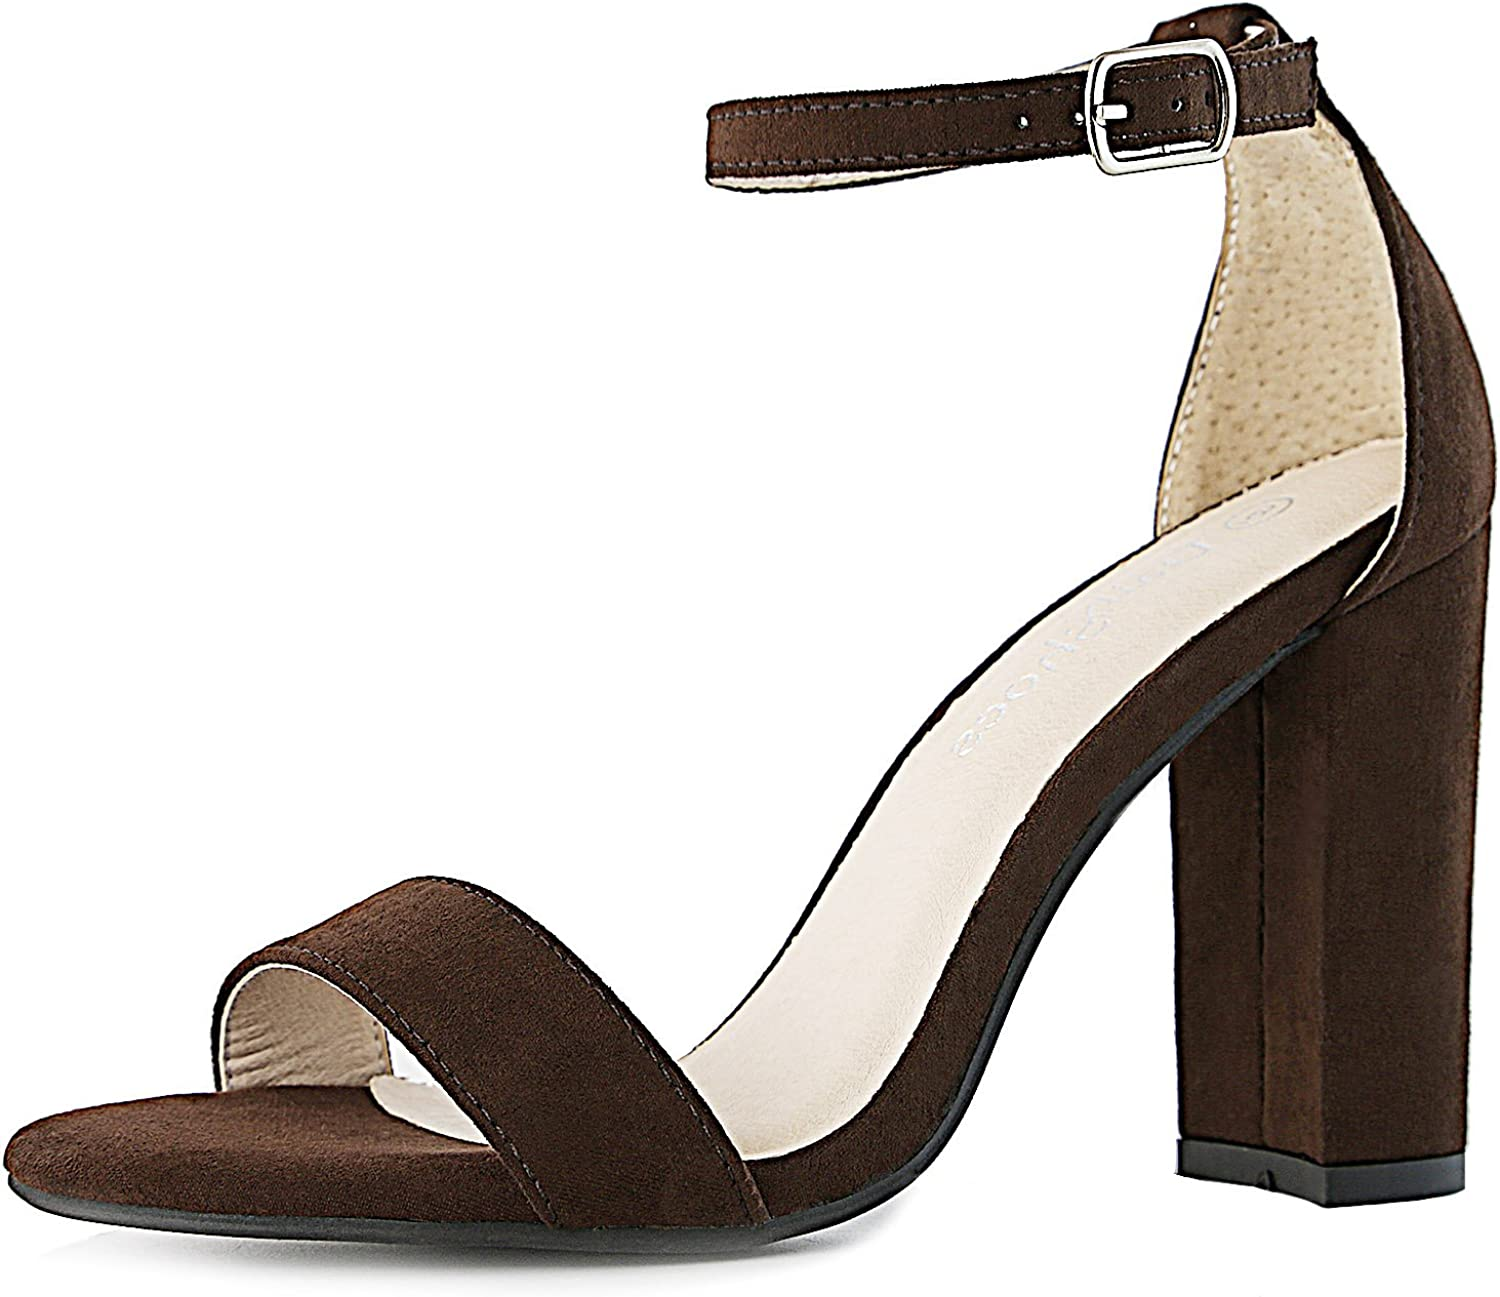 Dailyshoes Women's Women's Chunky Heel Sandal Open Toe Wedding Pumps Buckle Ankle Strap Party Evening shoes